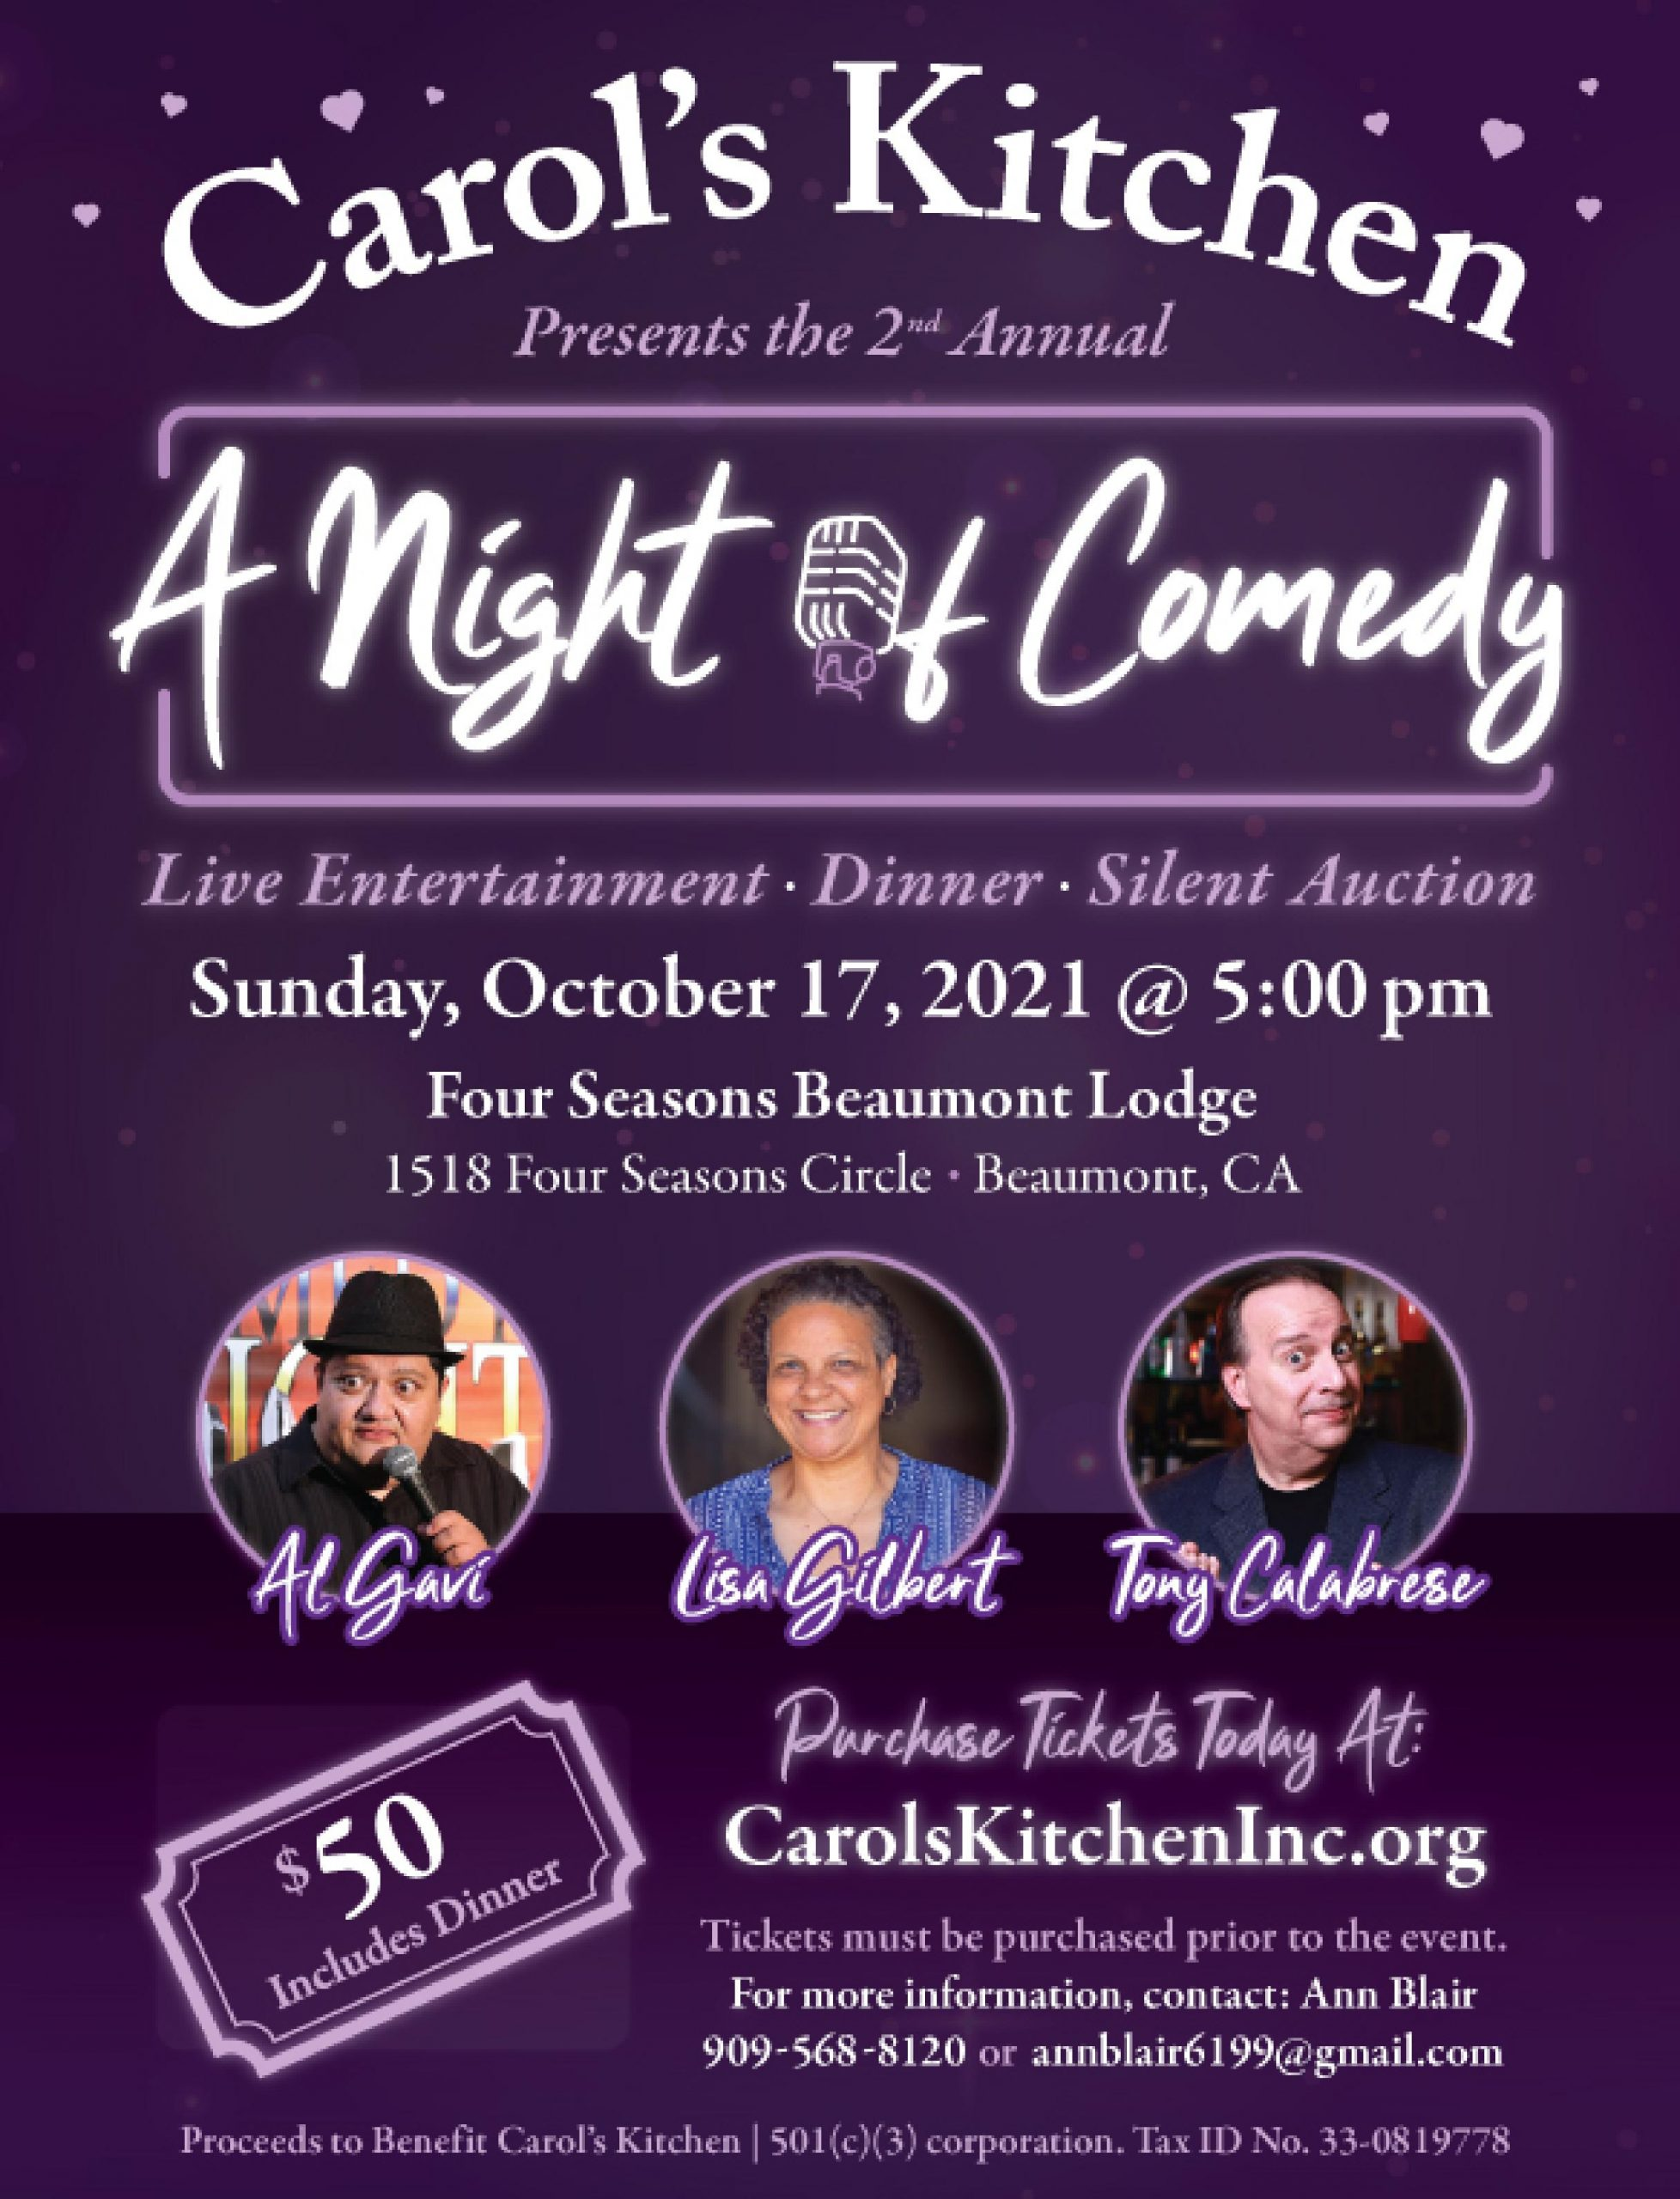 A Night of Comedy is October 17th at 5pm for $50